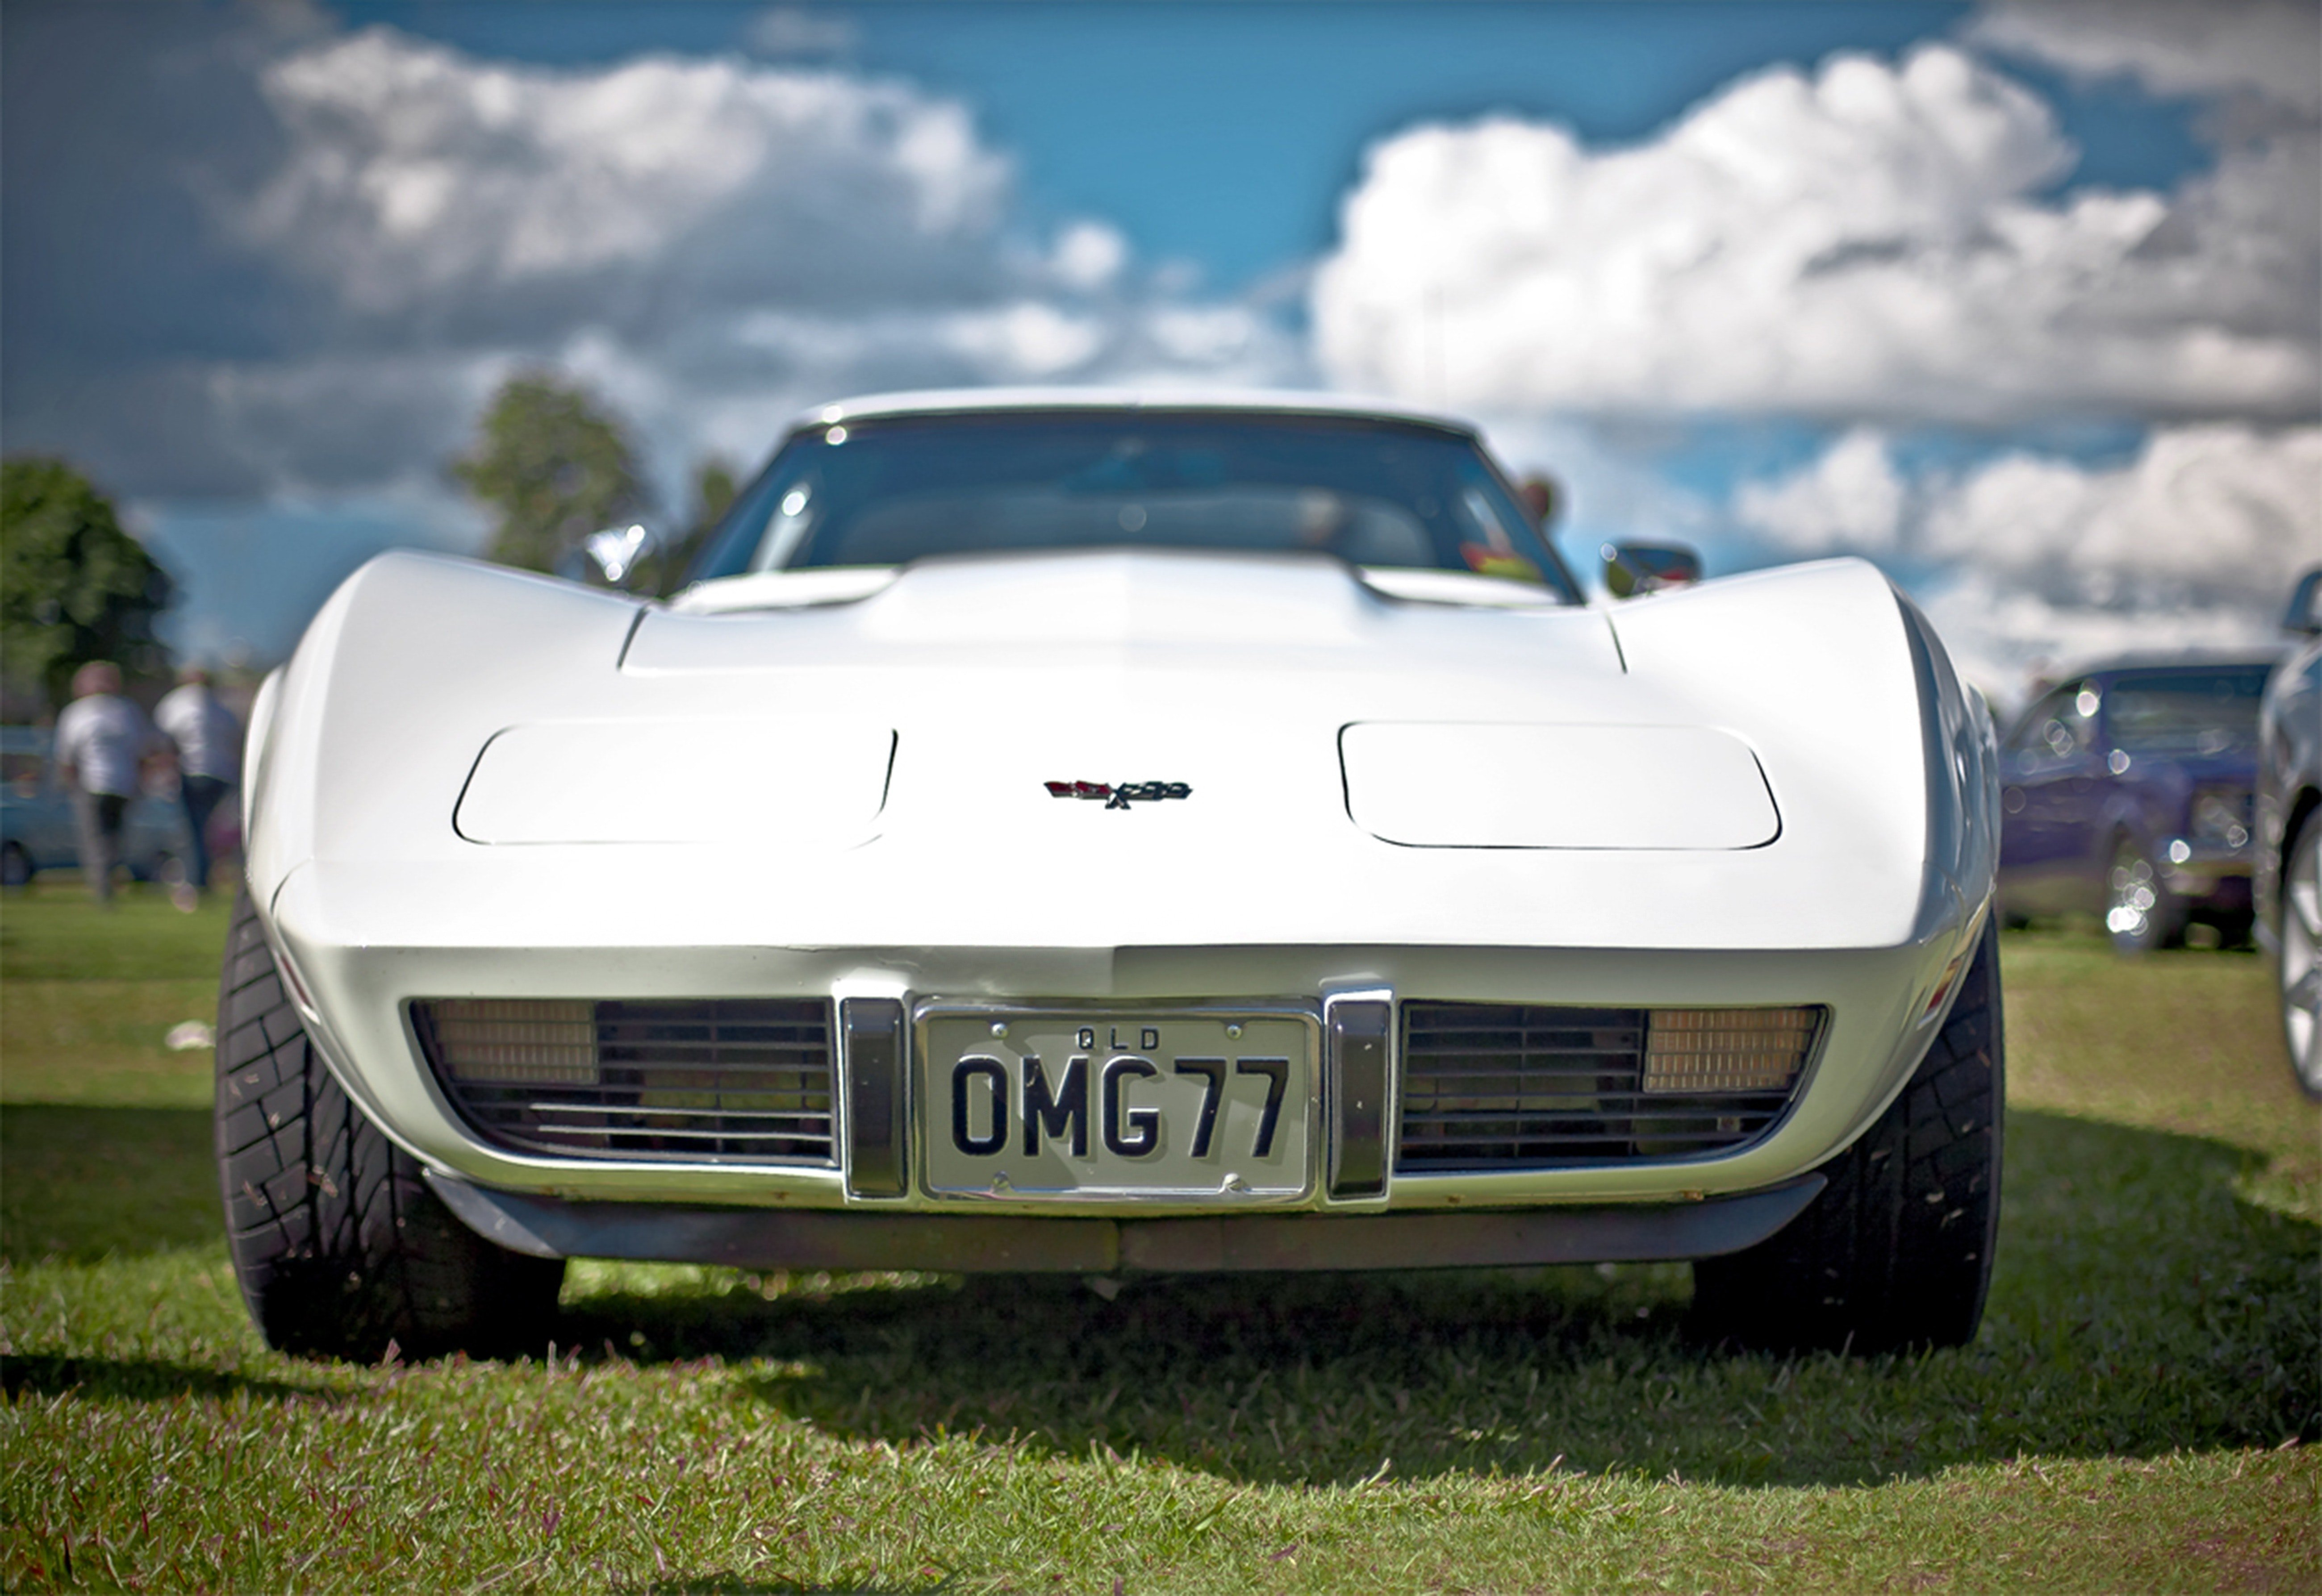 A White Corvette C3 . | Source: Pexels